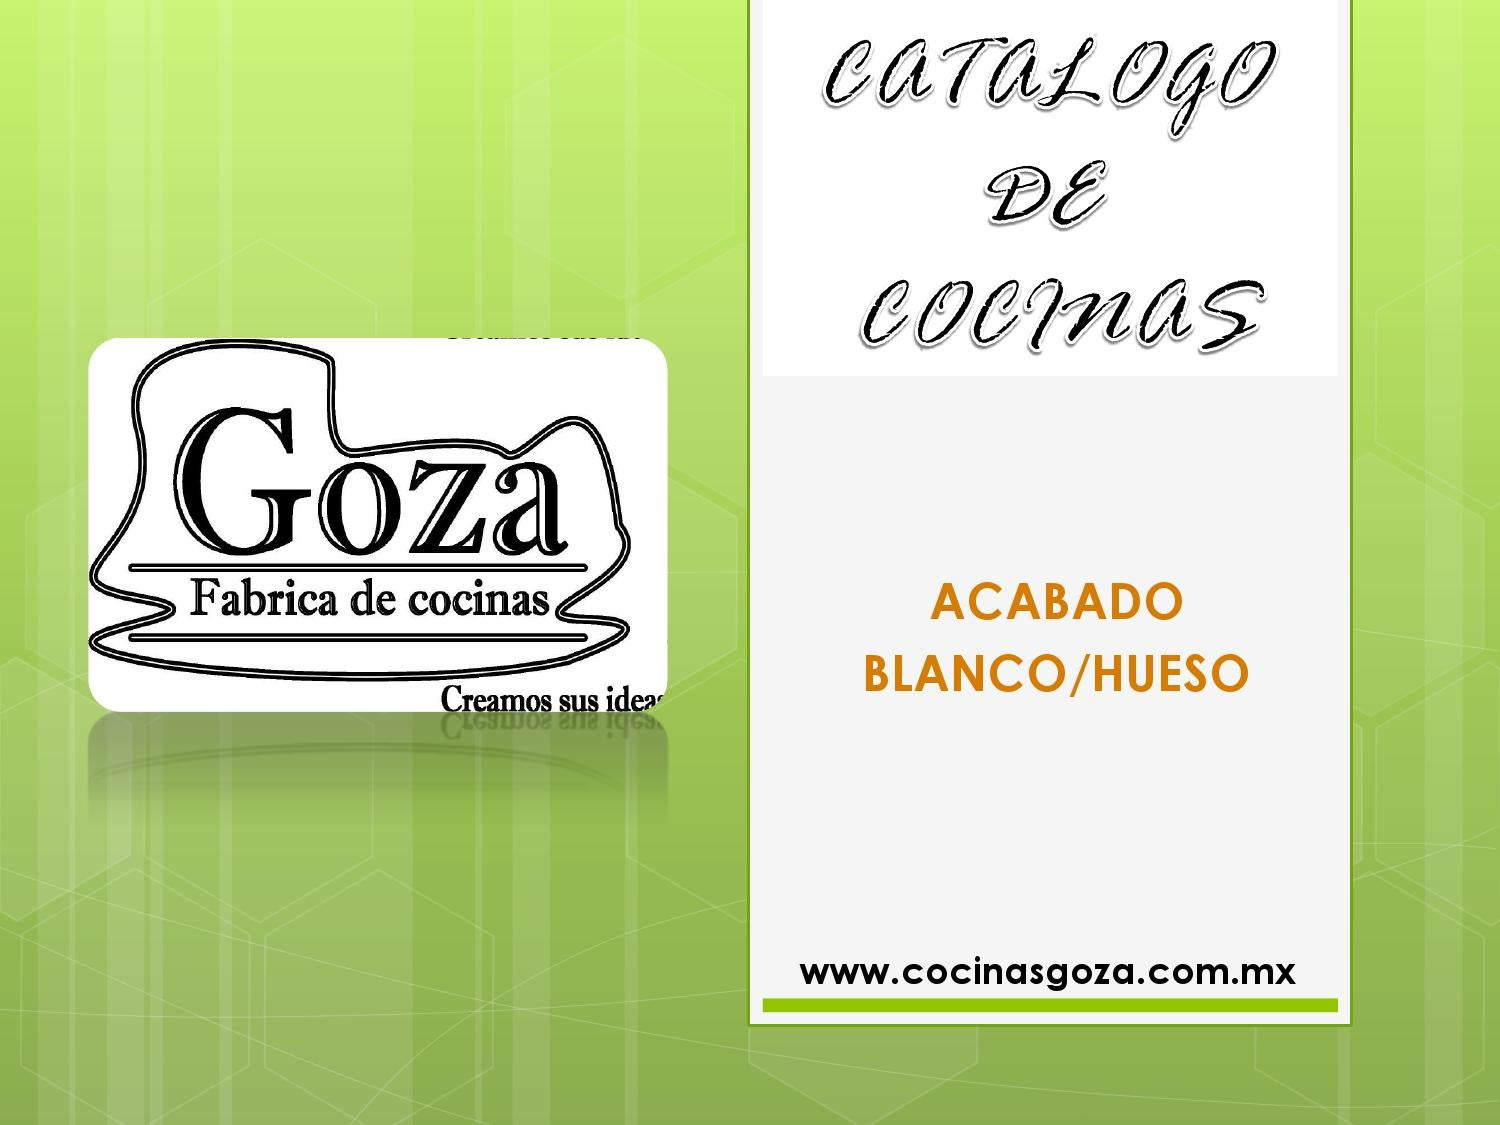 Catalogo de cocinas integrales acabado en color blanco for Catalogo de cocinas integrales pdf